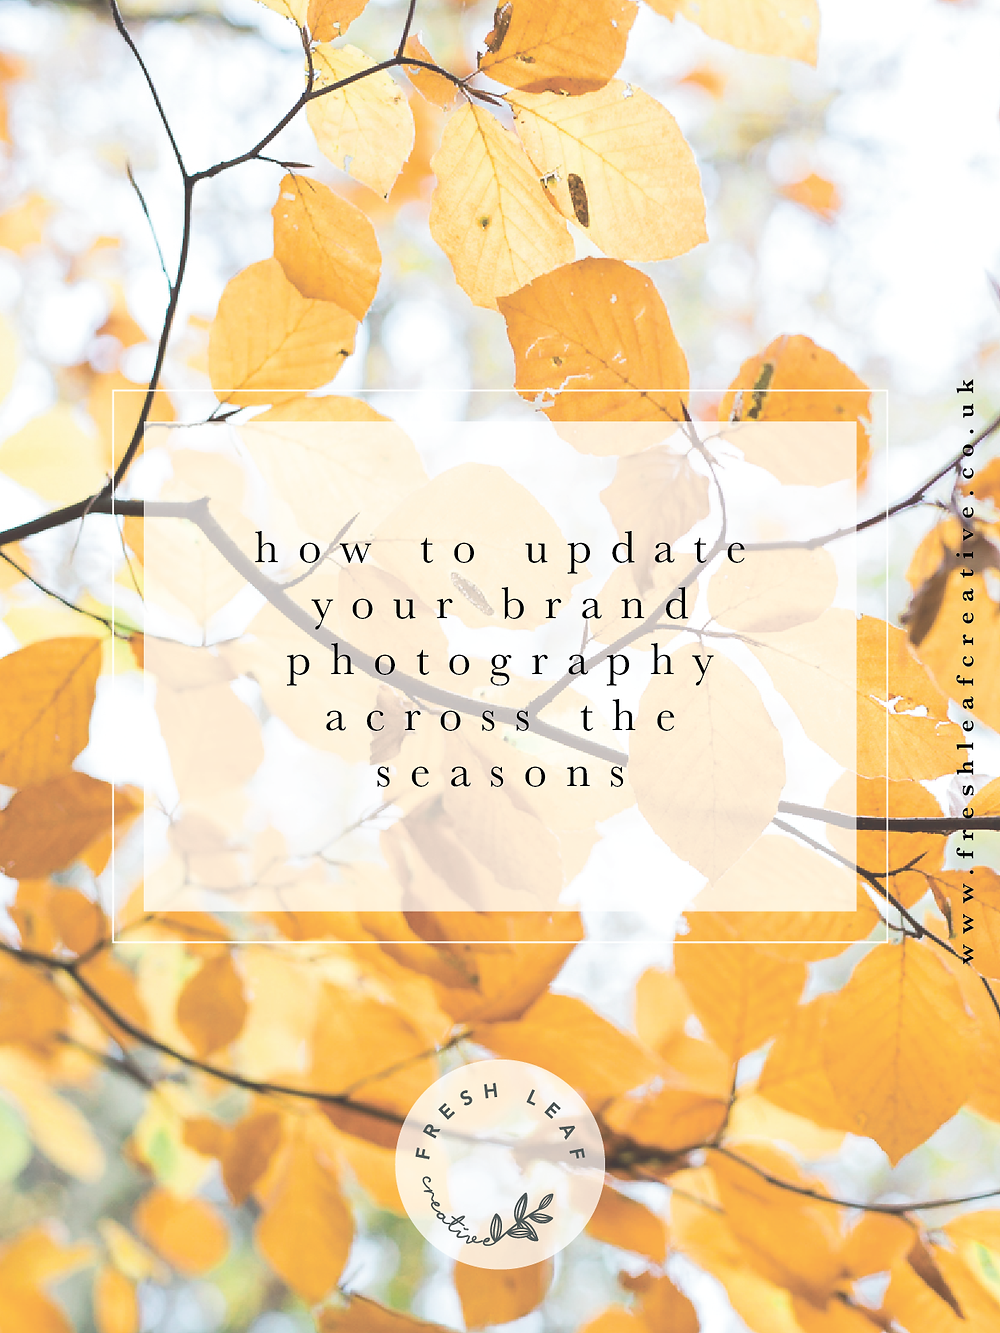 Personal Brand Photographer Surrey & SW London | Fresh Leaf Creative | Updating your personal brand photography across the seasons